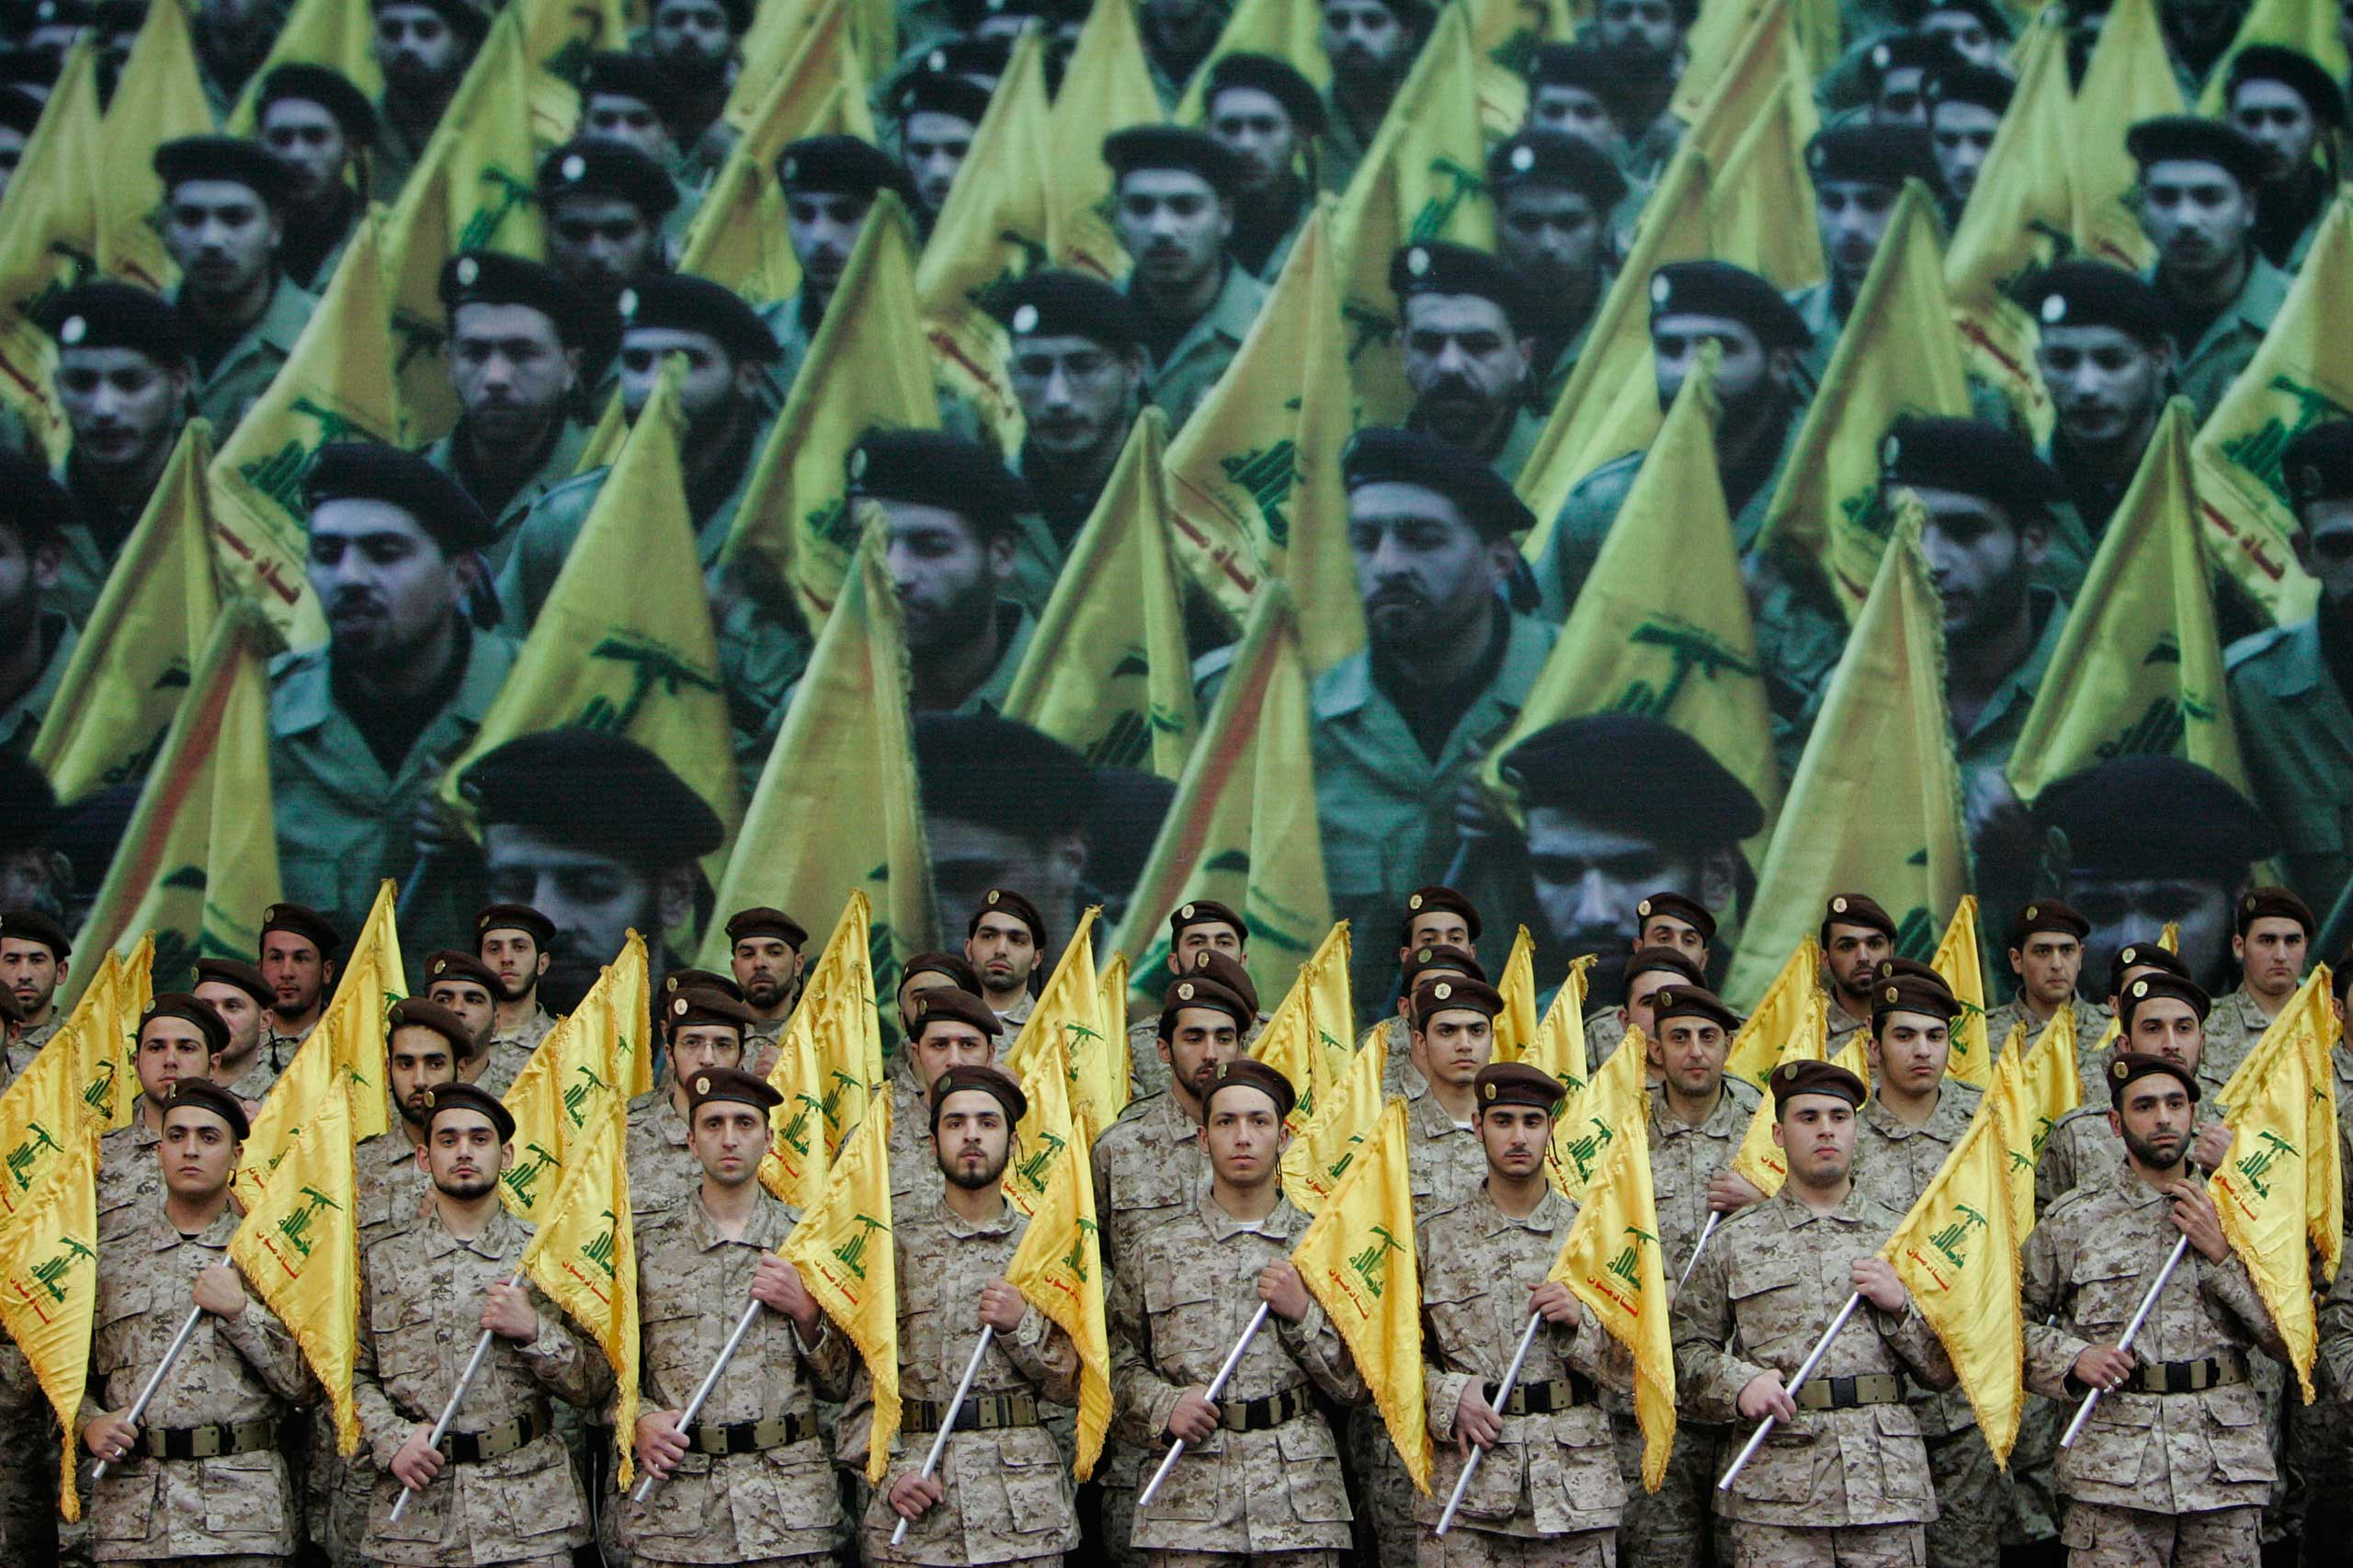 Hezbollah fighters hold their party flags as they attend a rally to commemorate slain top Hezbollah commander Imad Mughniyeh and two other leaders, Abbas Musawi and Ragheb Harb, in the Shiite suburb of Beirut, Feb. 22, 2008.